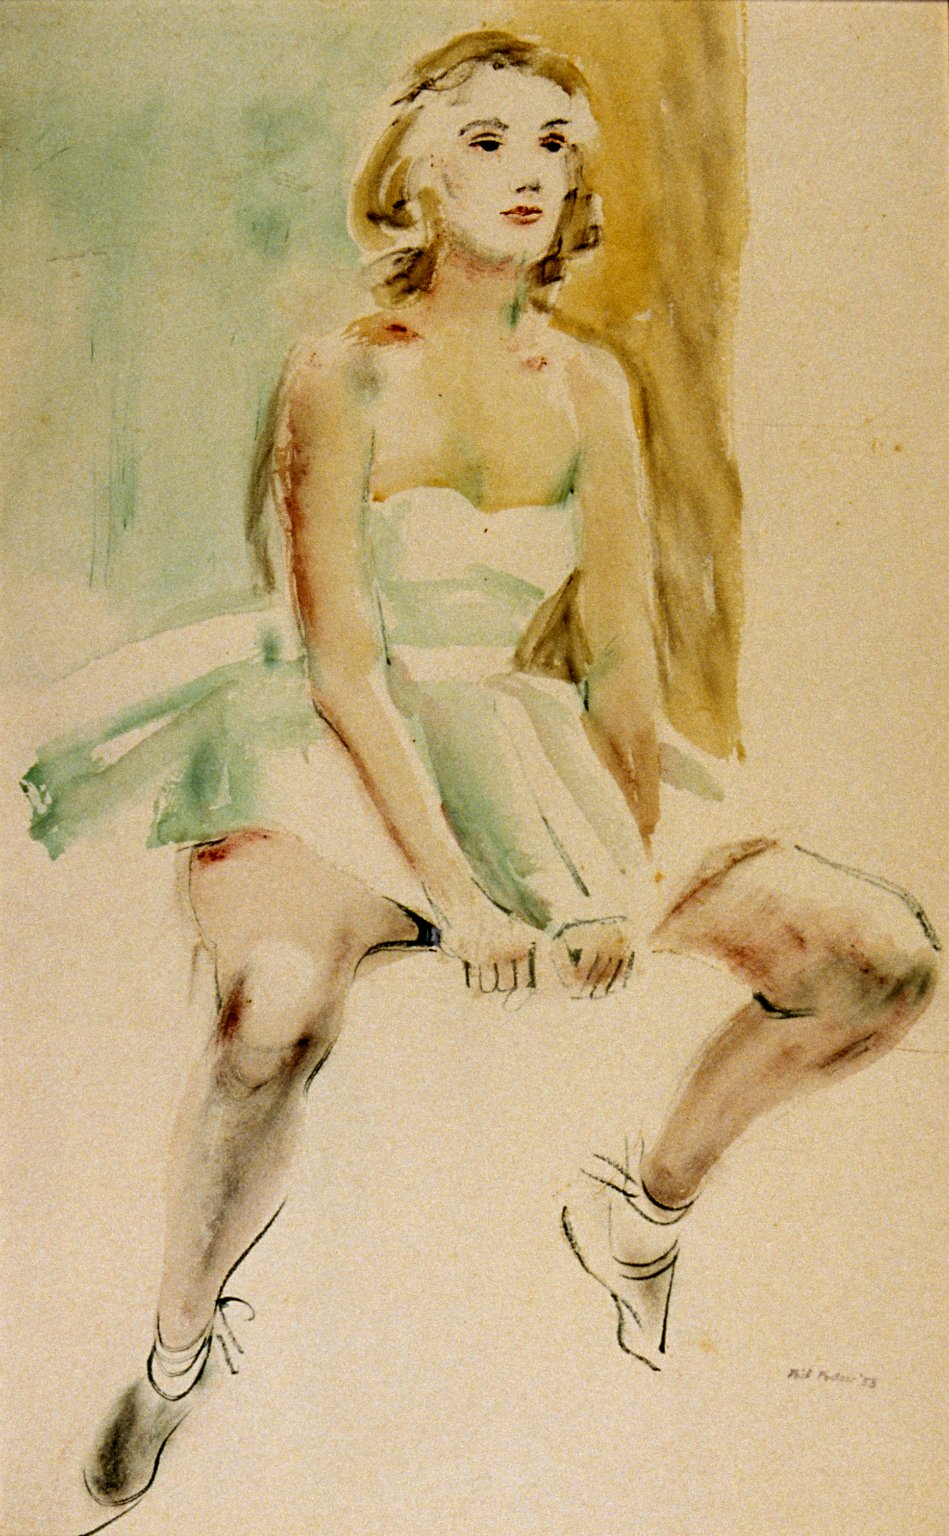 Woman with Short Dress